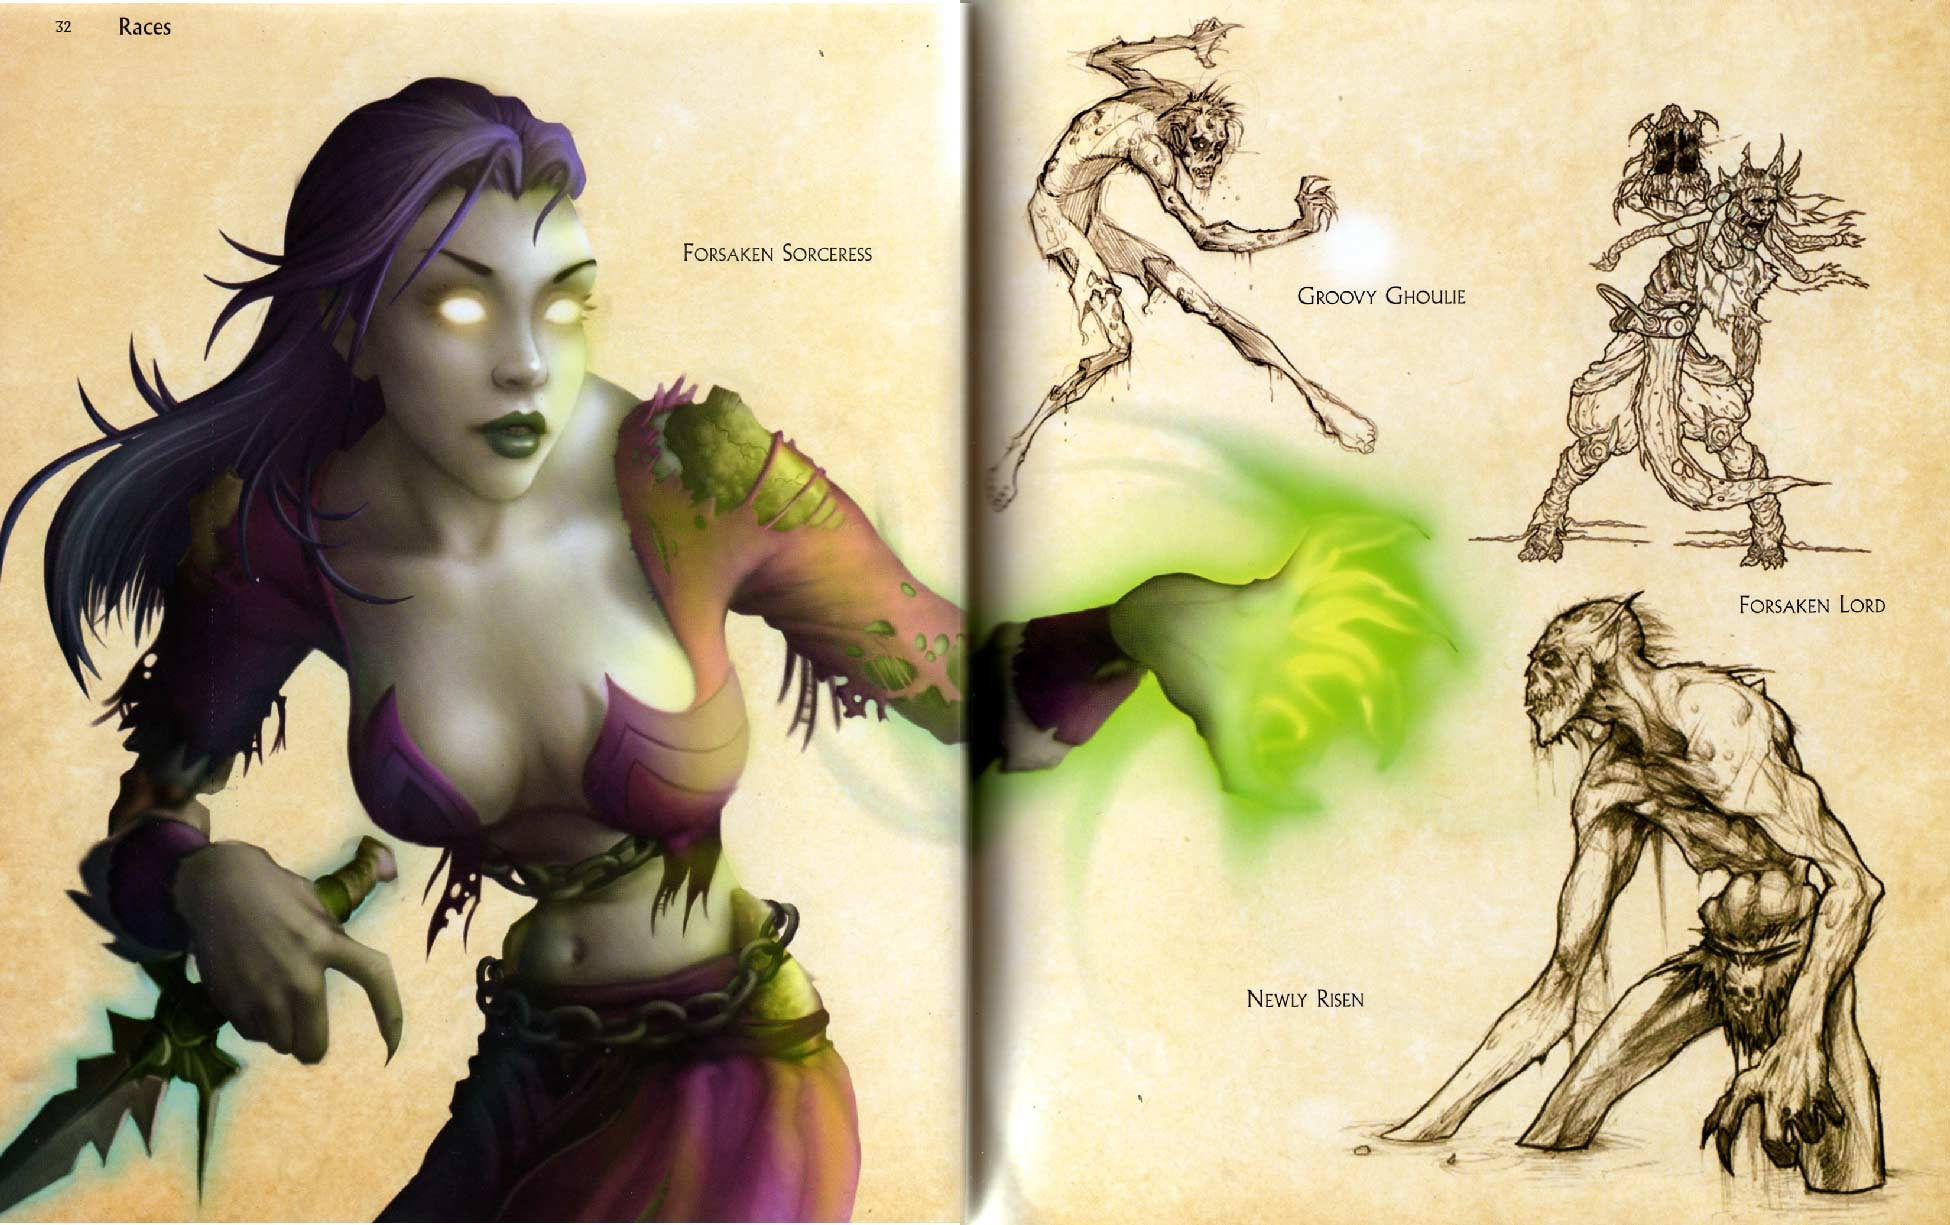 World of warcraft pornhup pics sexy comic